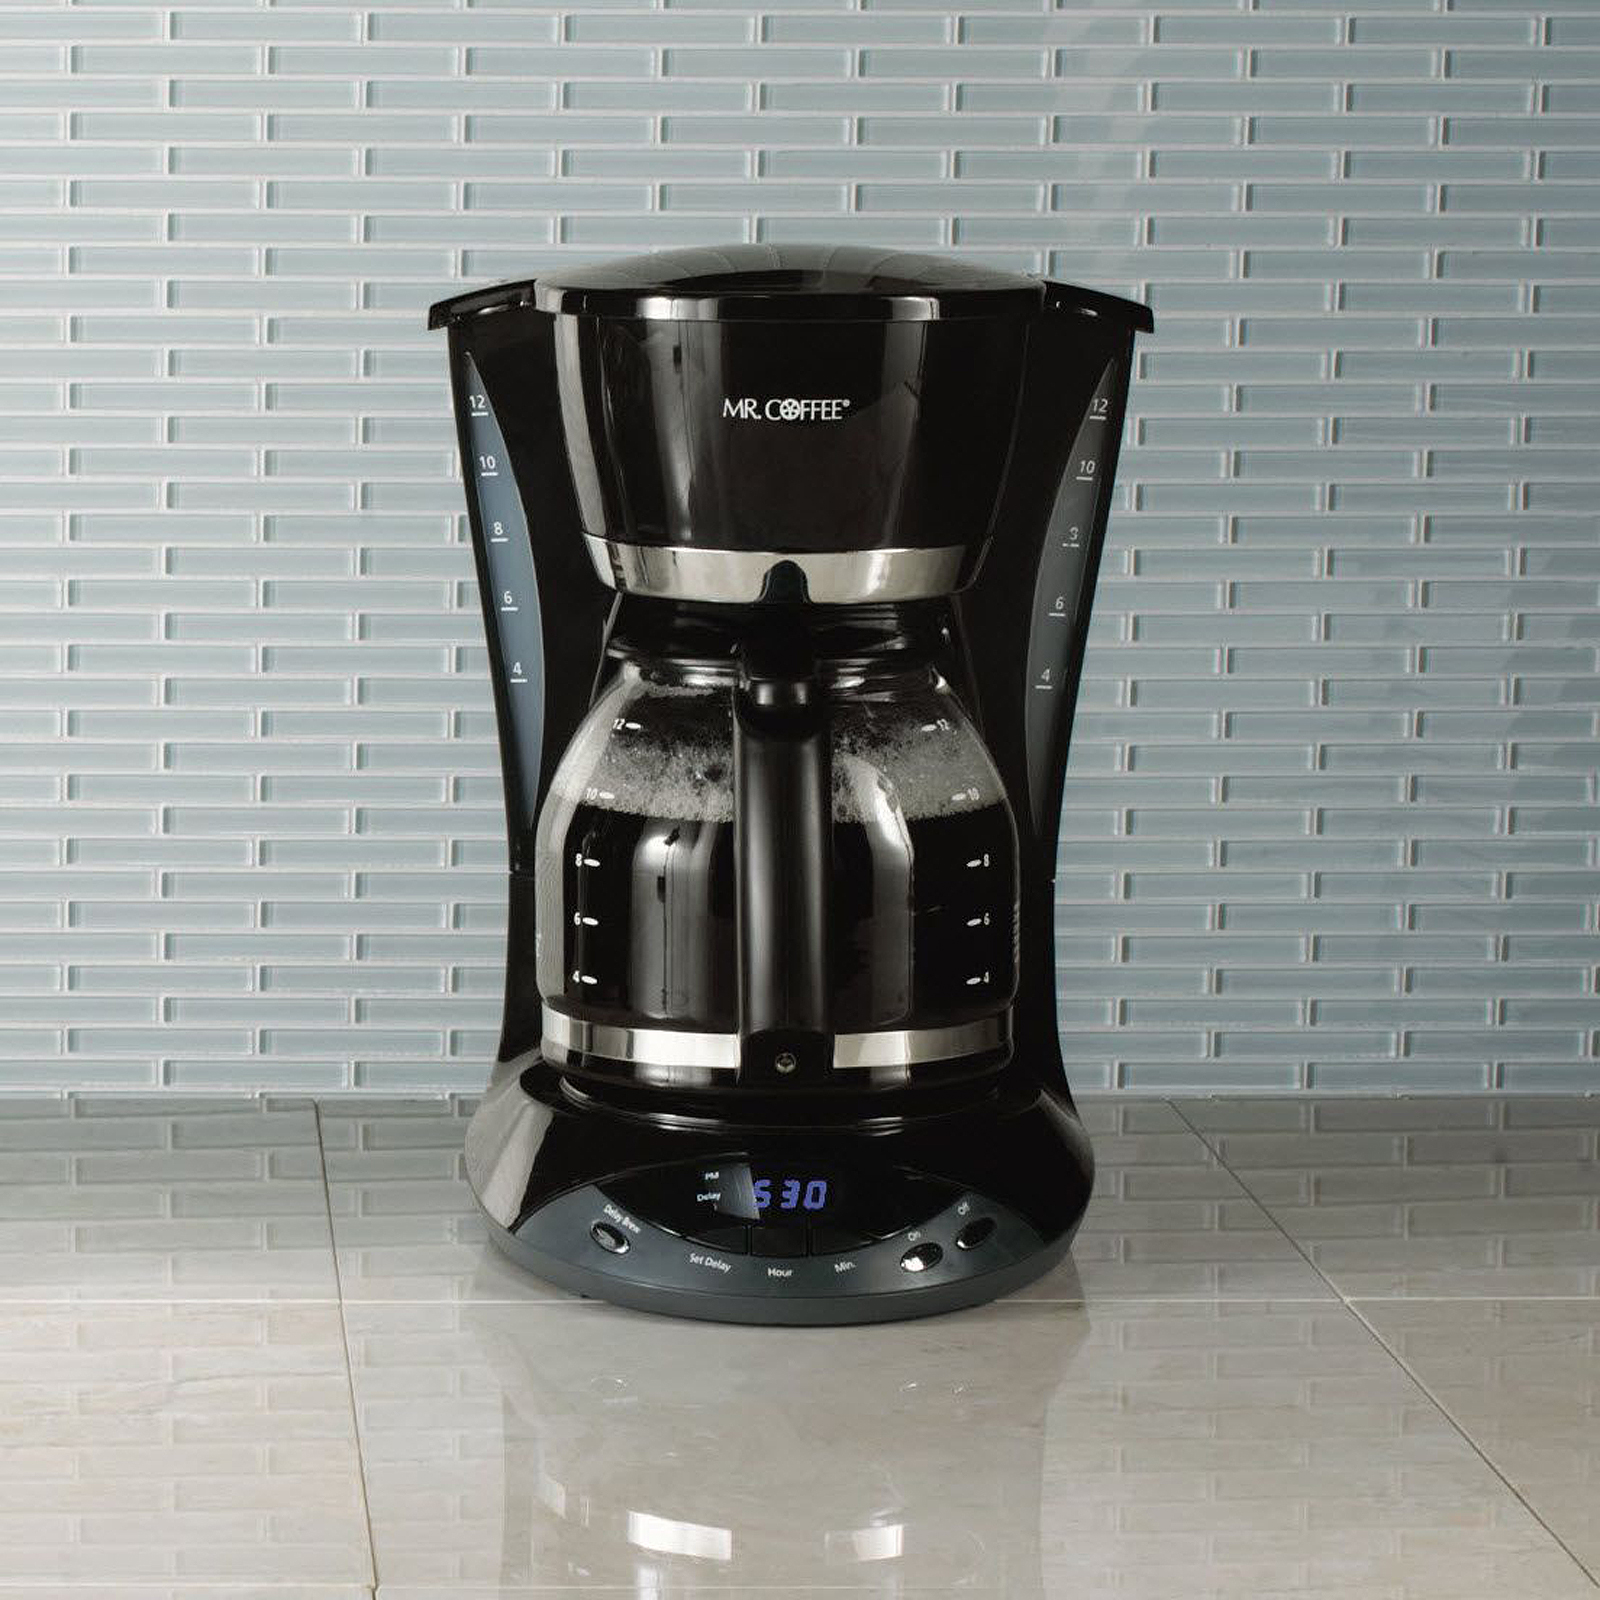 Mr. Coffee 12-Cup Programmable Coffee Maker in Black